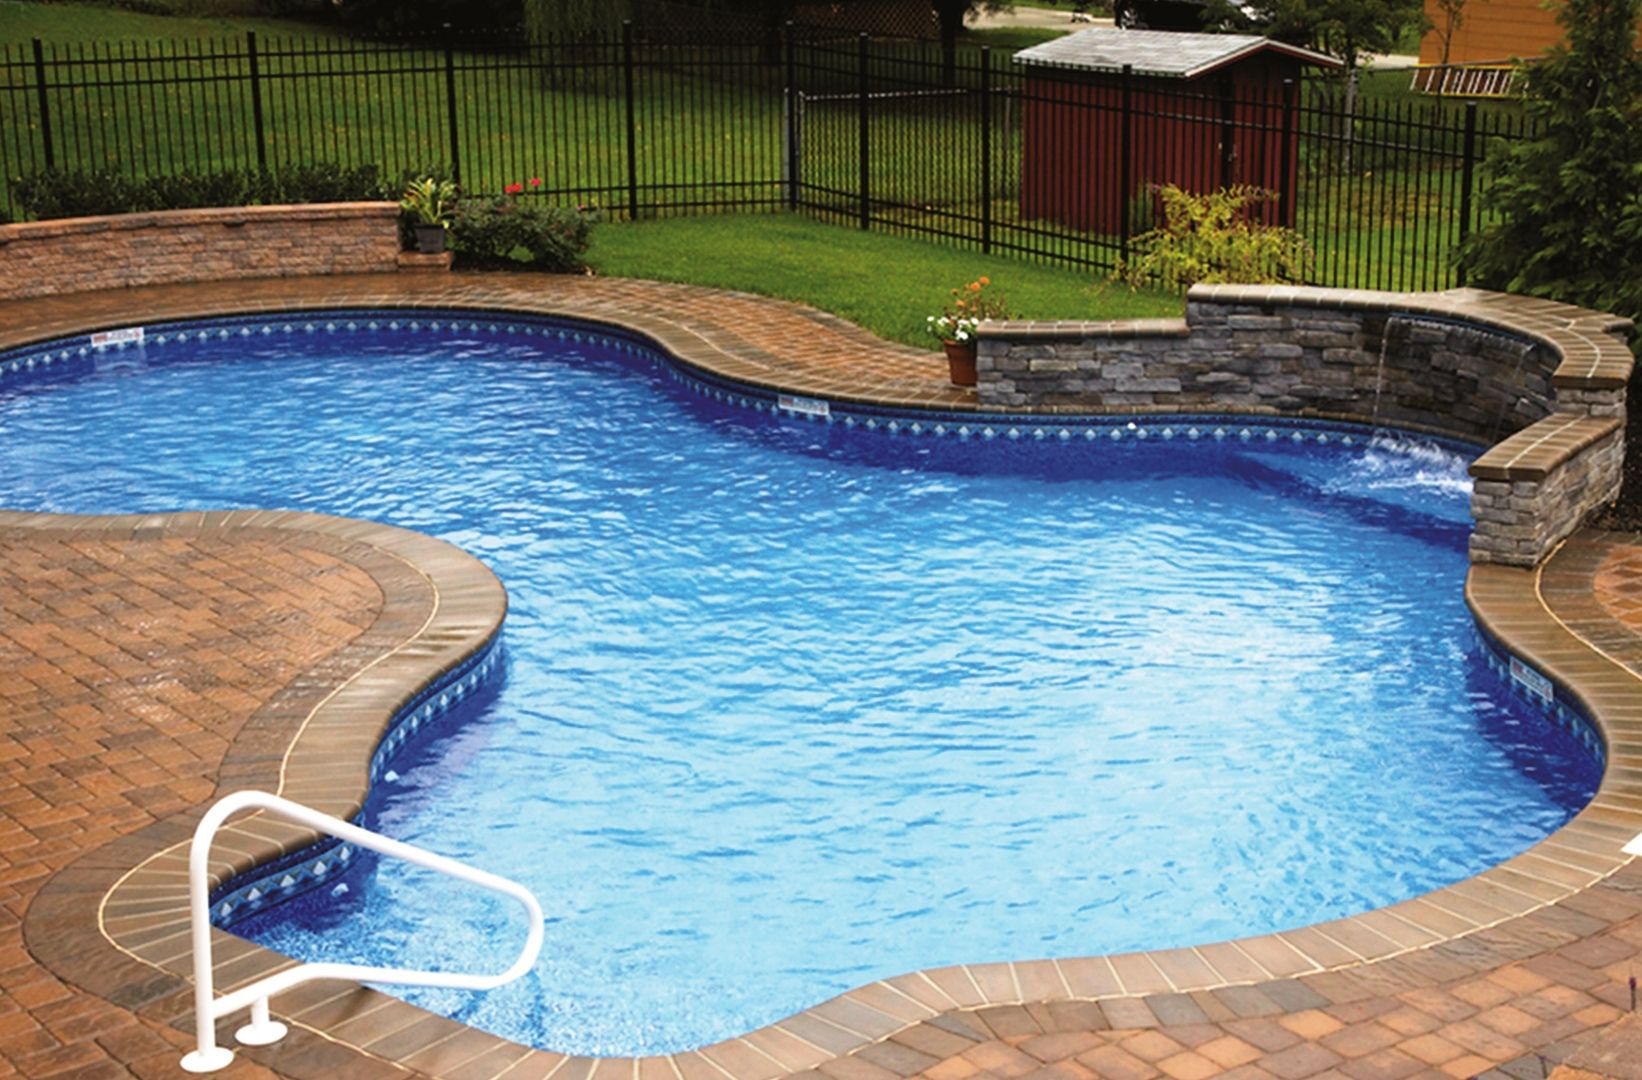 Back yard swimming pool ideas swimming pool design pinterest small backyard design - Backyard swimming pools designs ...